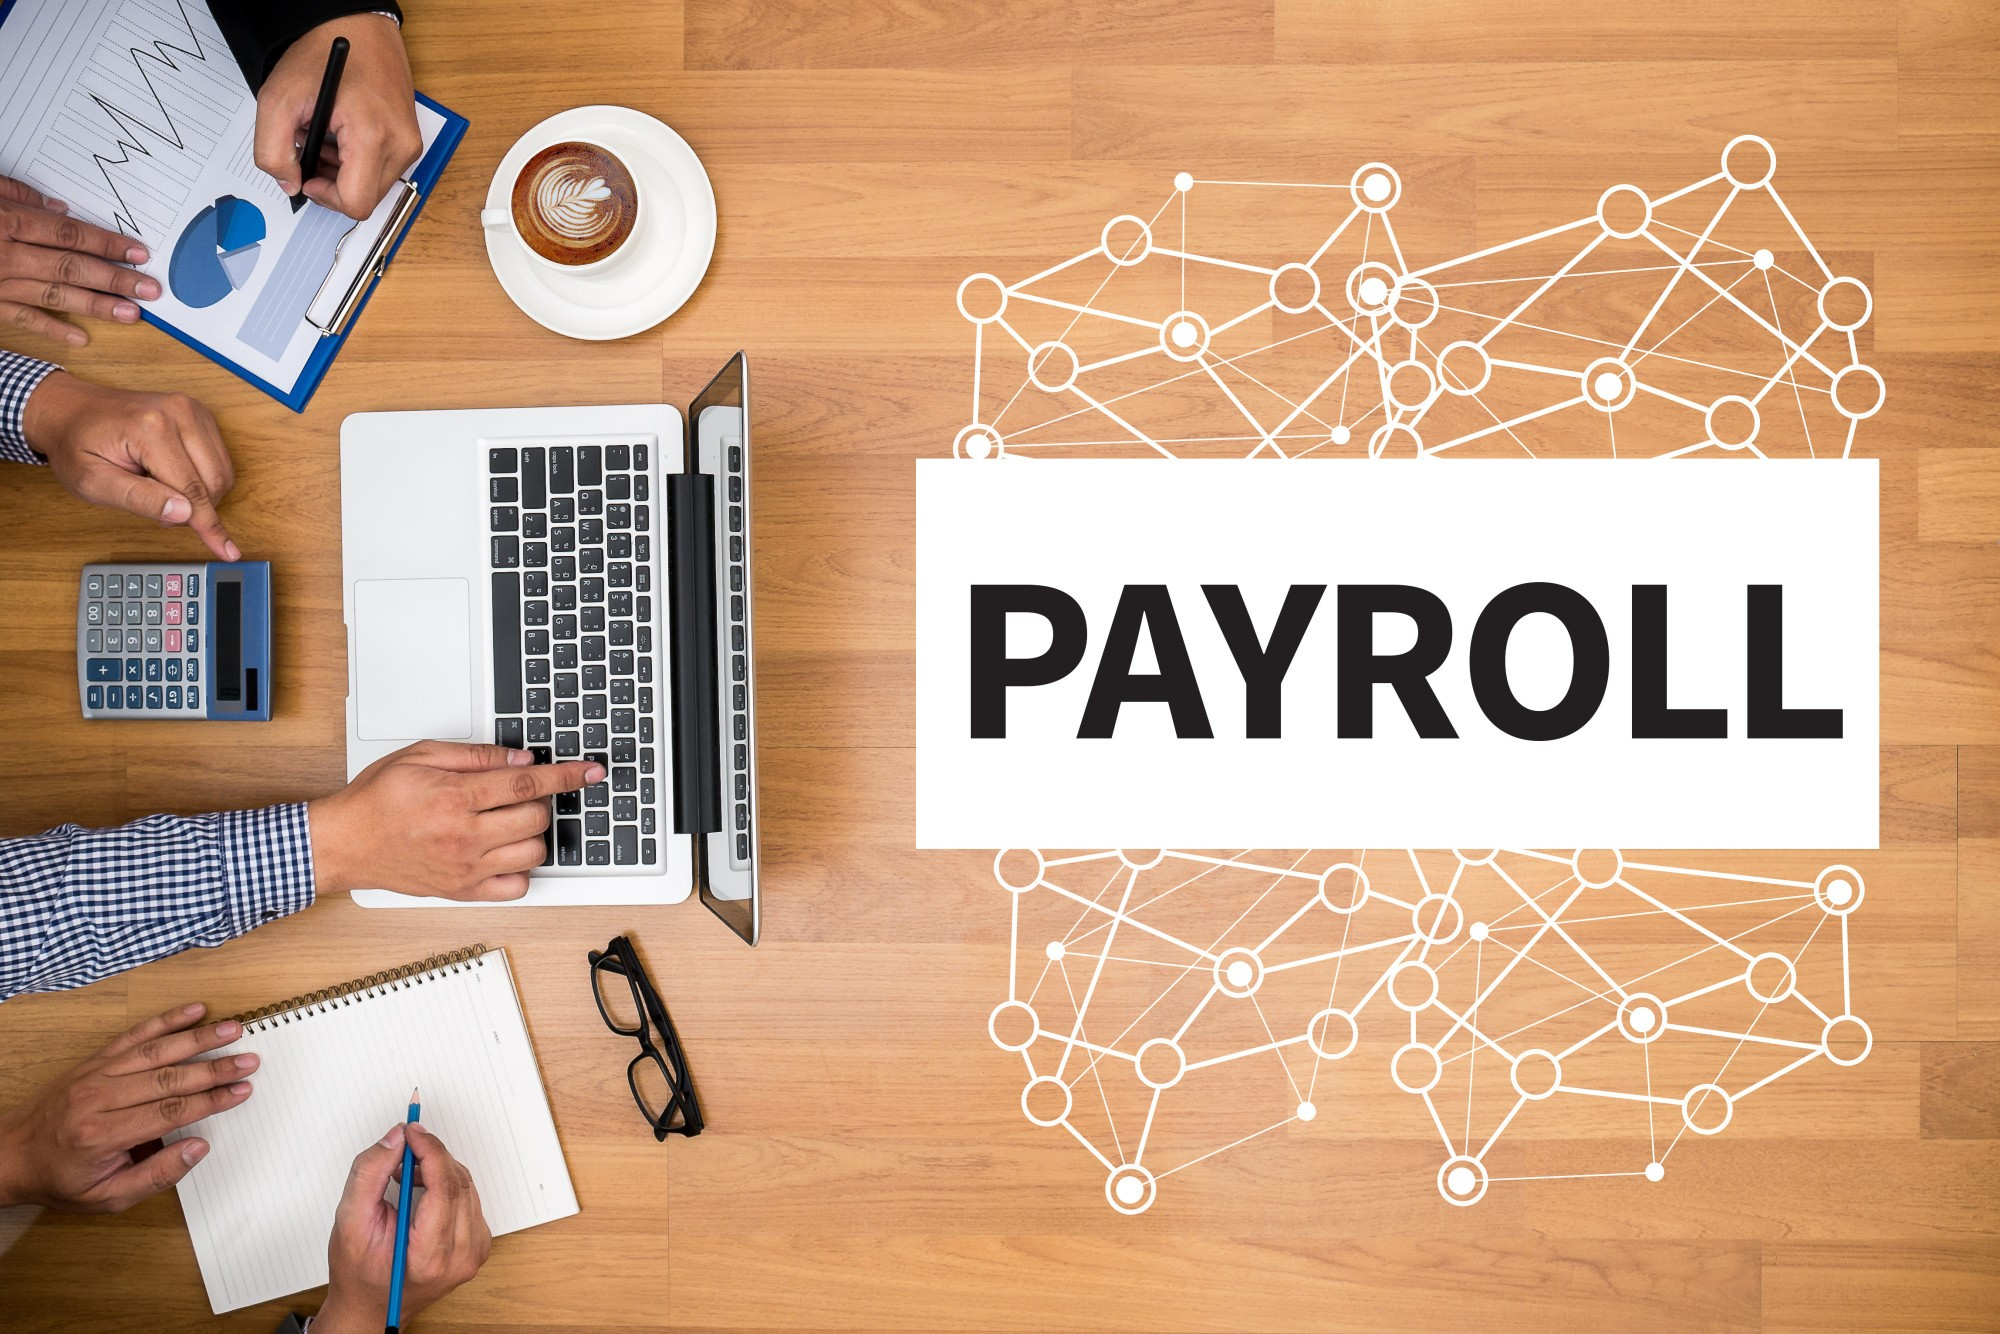 How to Do Payroll Taxes and Process Payroll Yourself